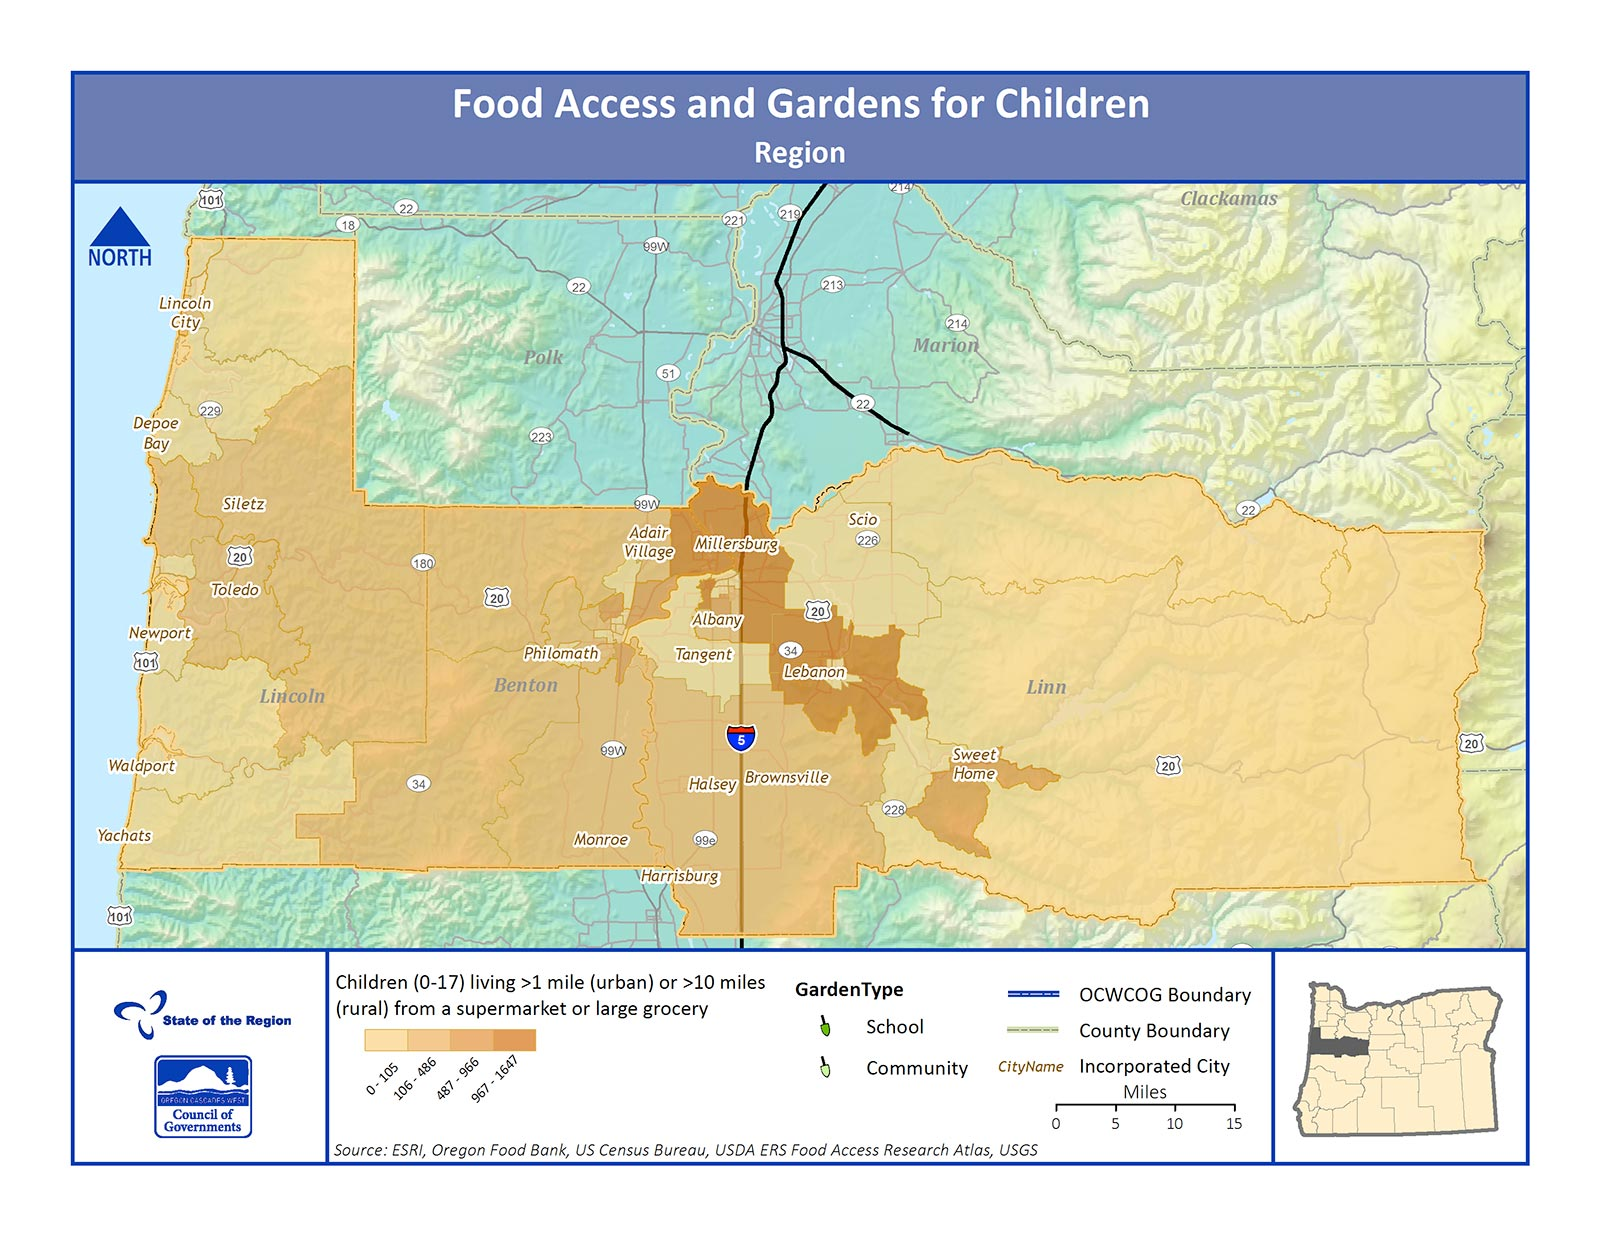 Map of Food Access and Gardens for Children in the Region